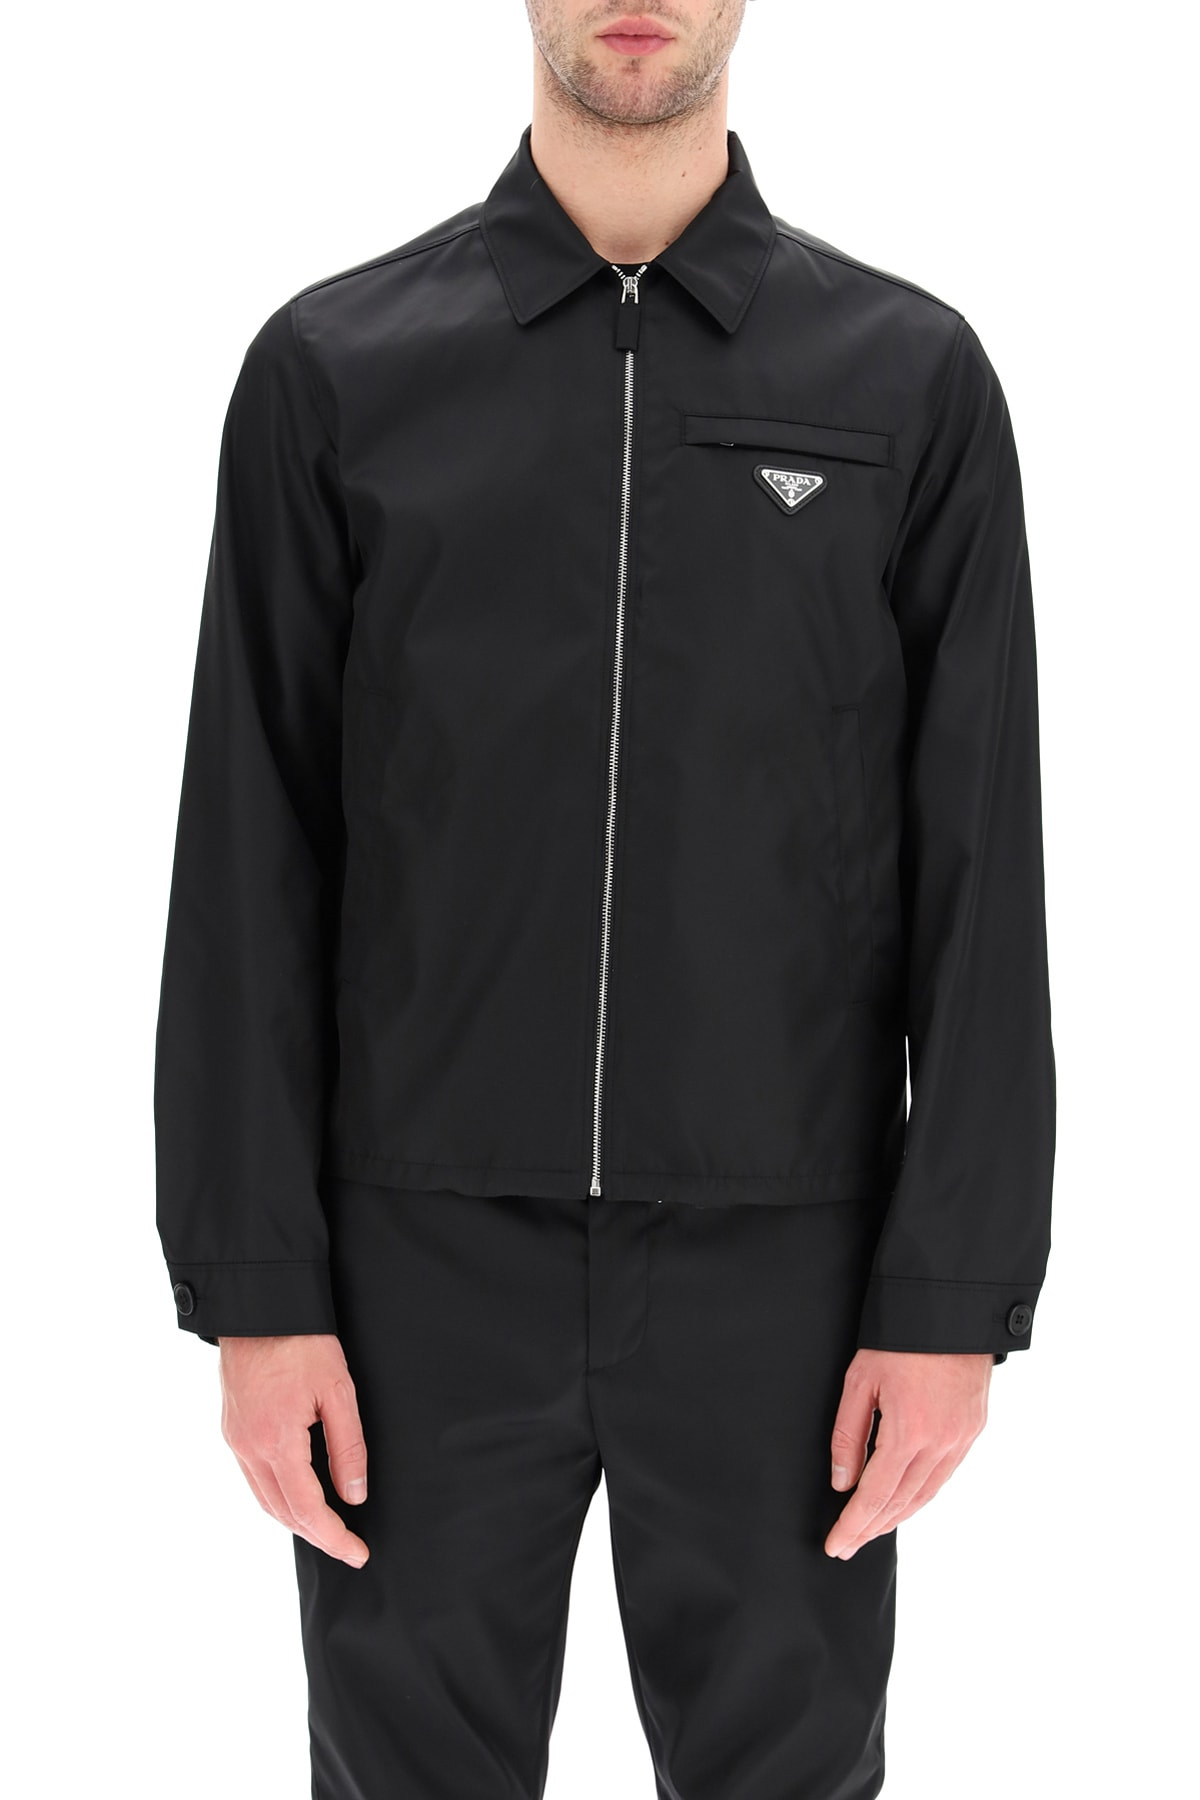 Prada RE-NYLON GABARDINE ZIP-UP BLOUSON